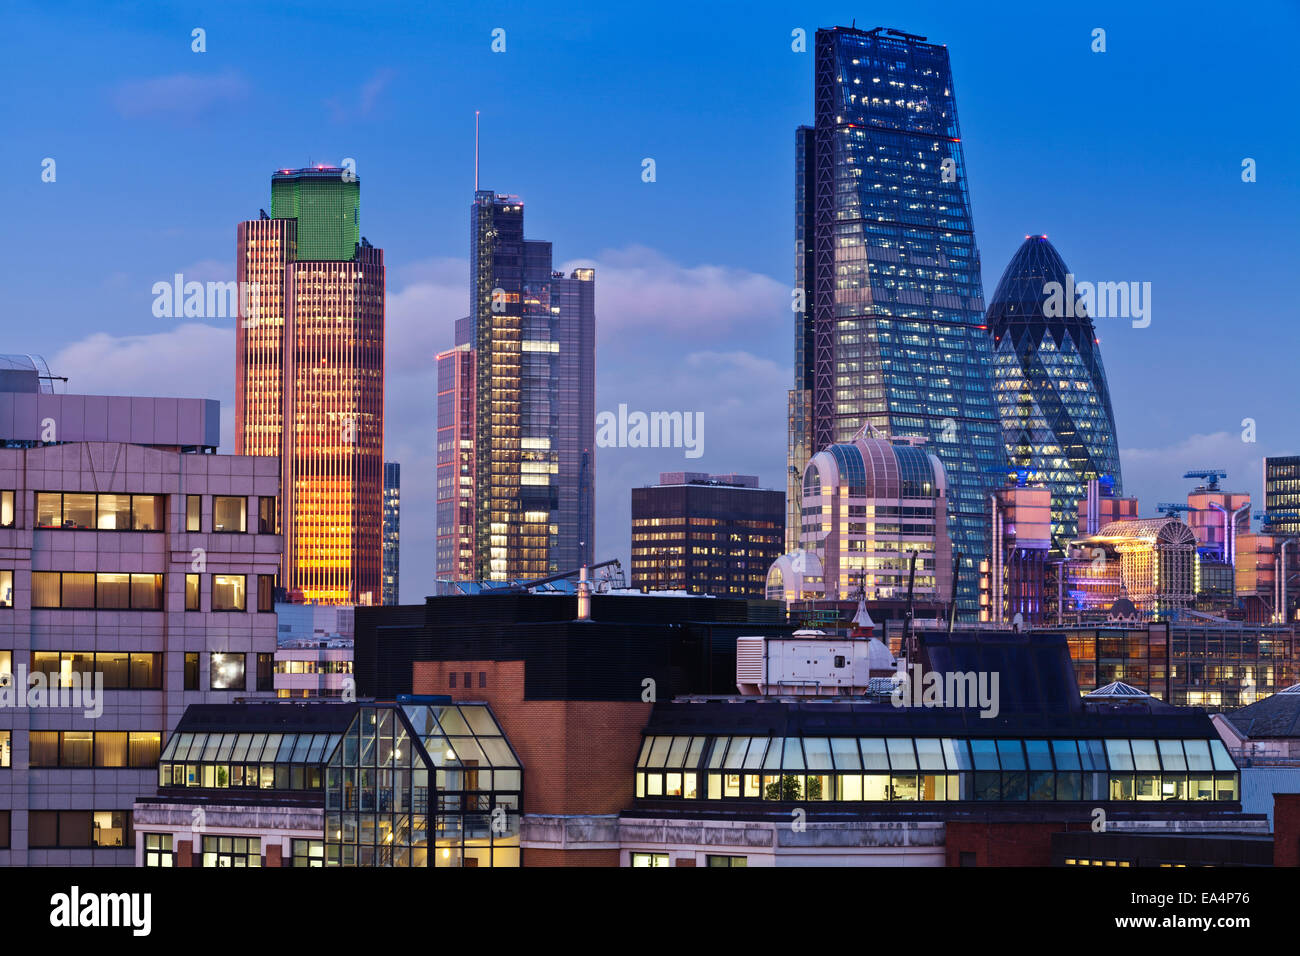 Colorful City of London skyline at twilight with famous modern landmark buildings illuminated - Stock Image